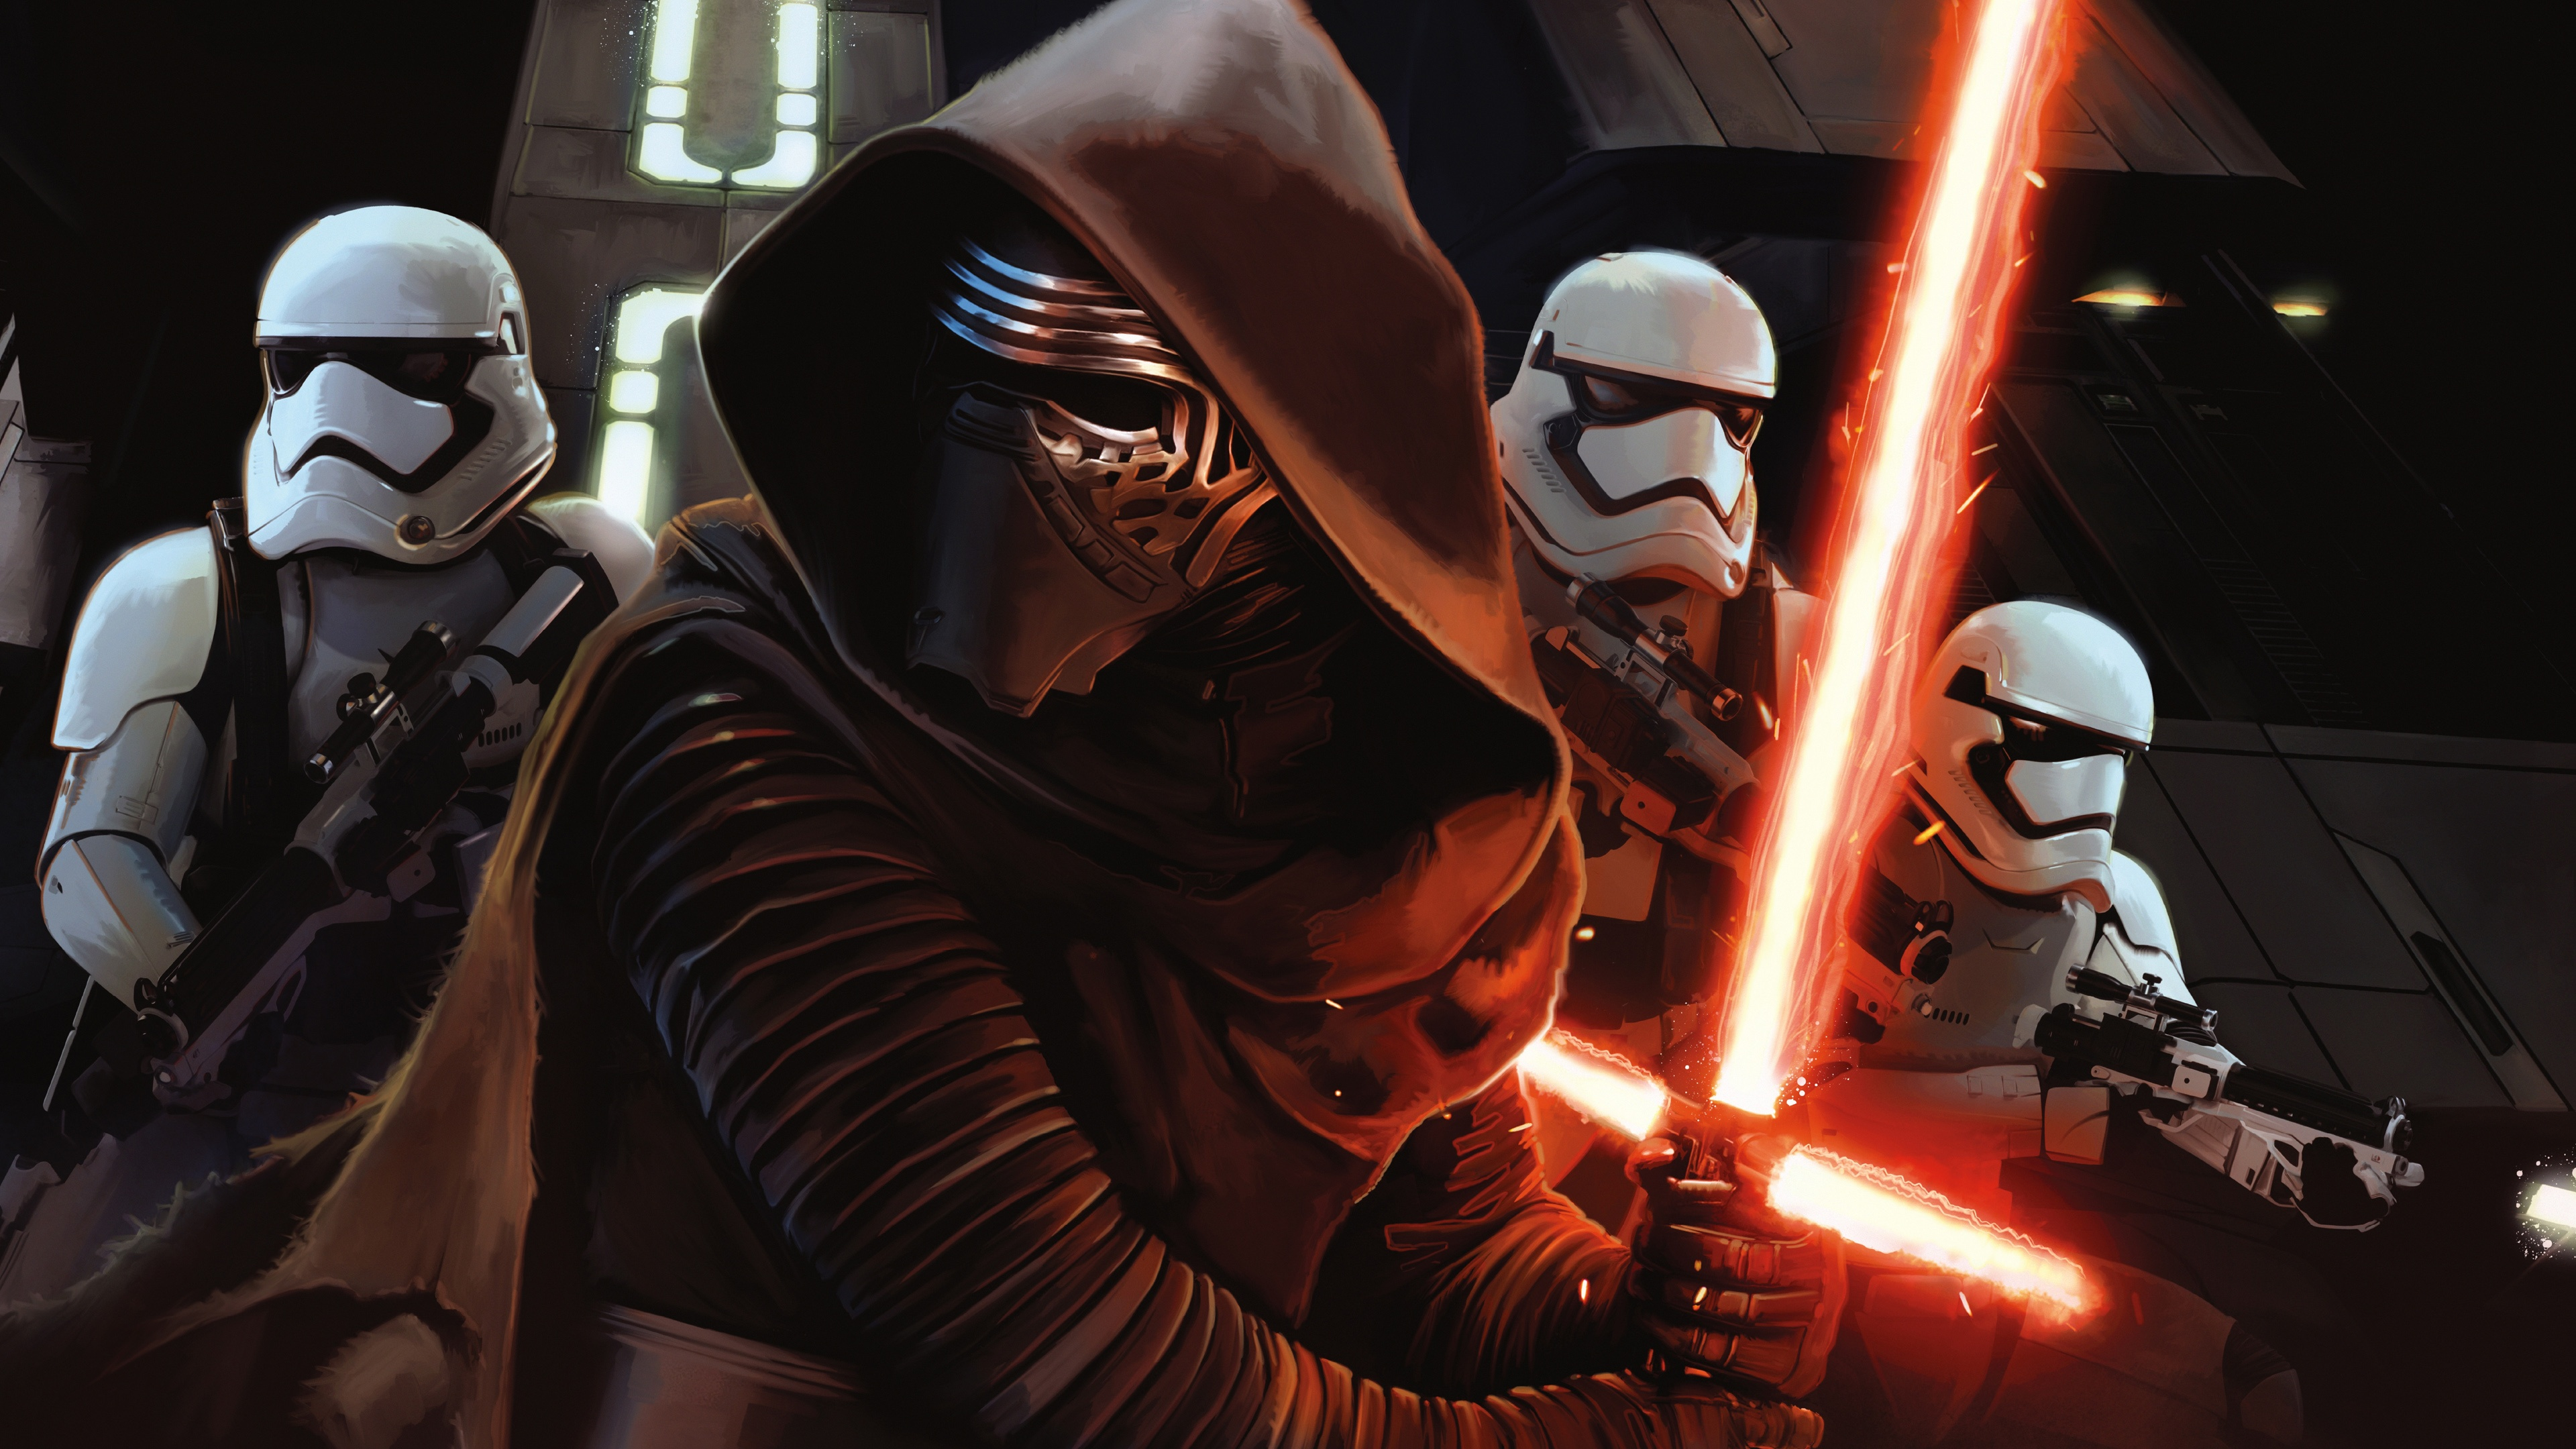 Star Wars Episode VII The Force Awakens Wallpapers HD Wallpapers 3840x2160